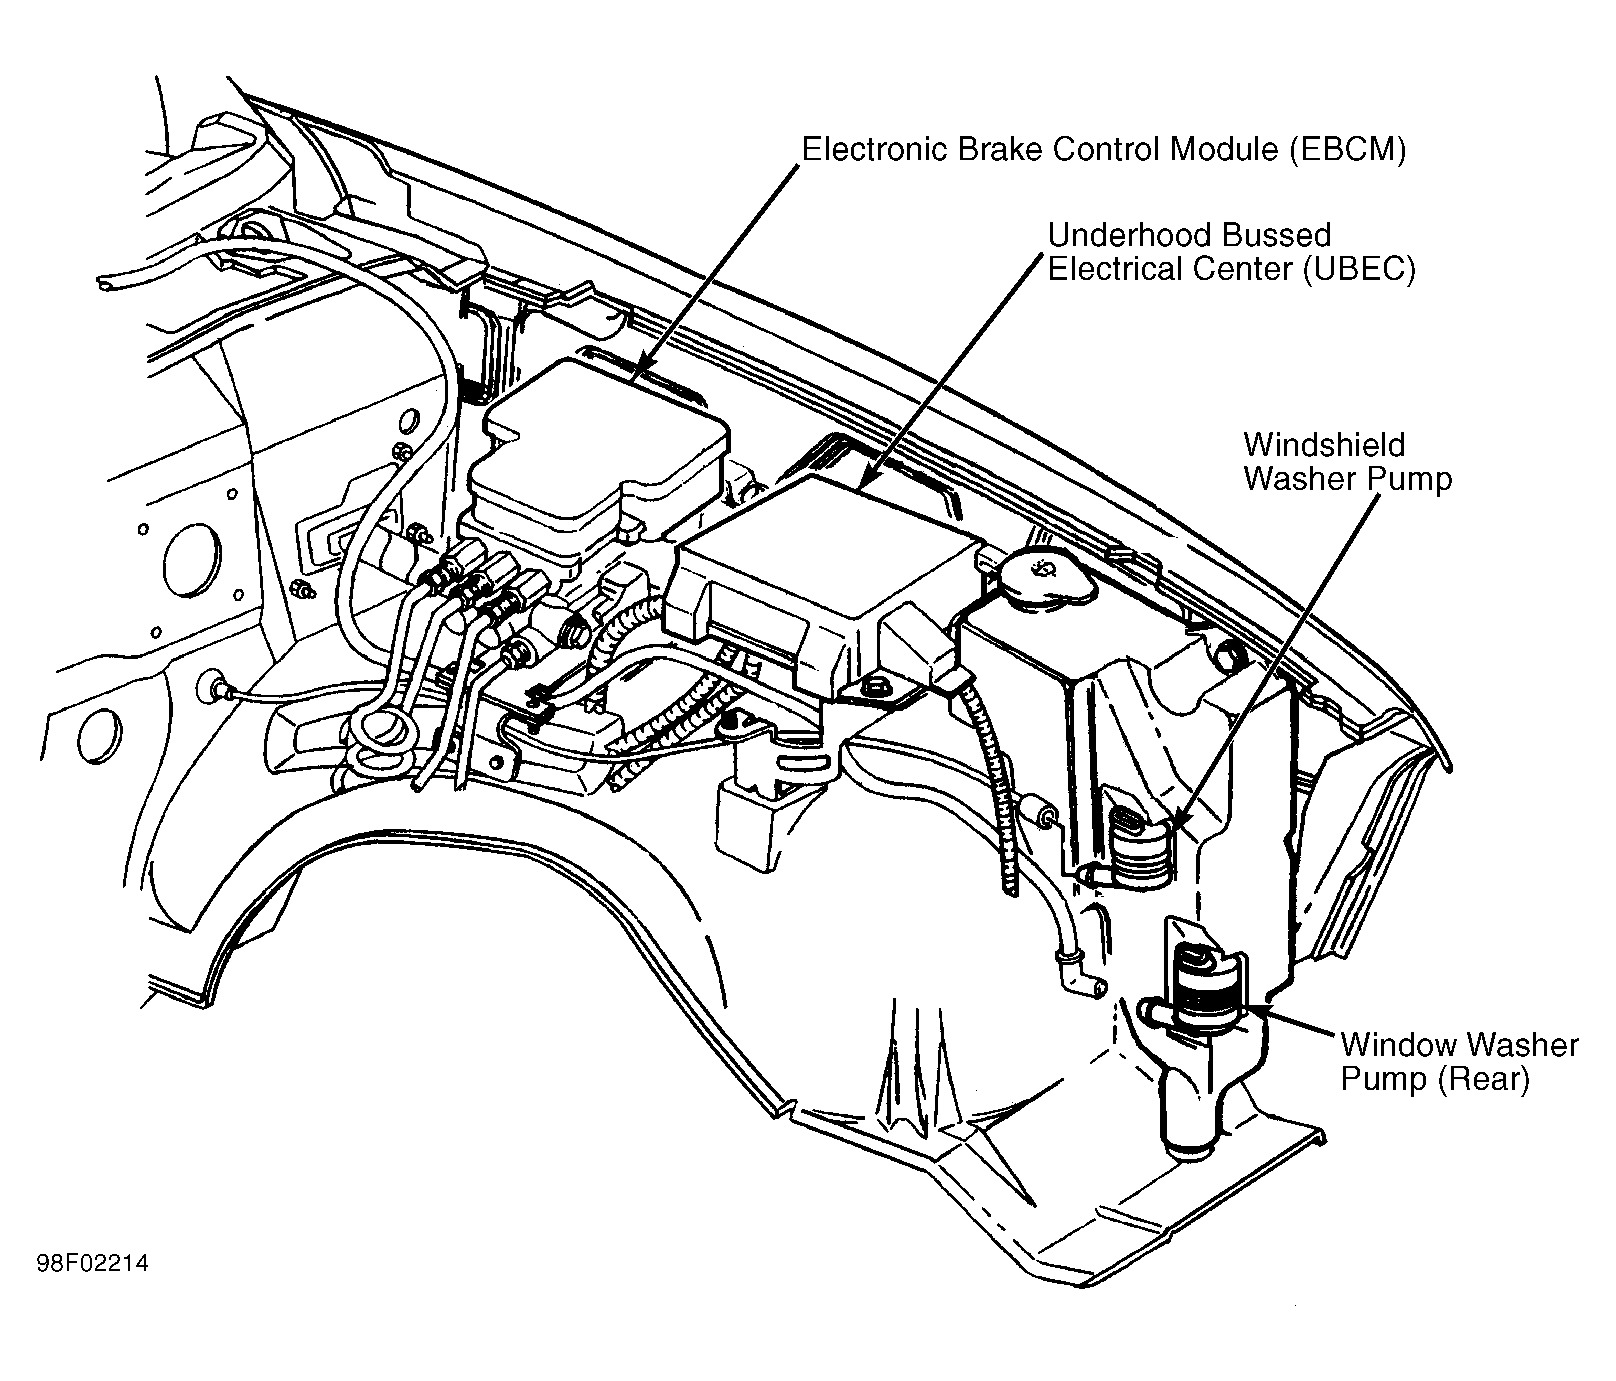 2003 Chevy Blazer Fuse Box Location : 35 Wiring Diagram